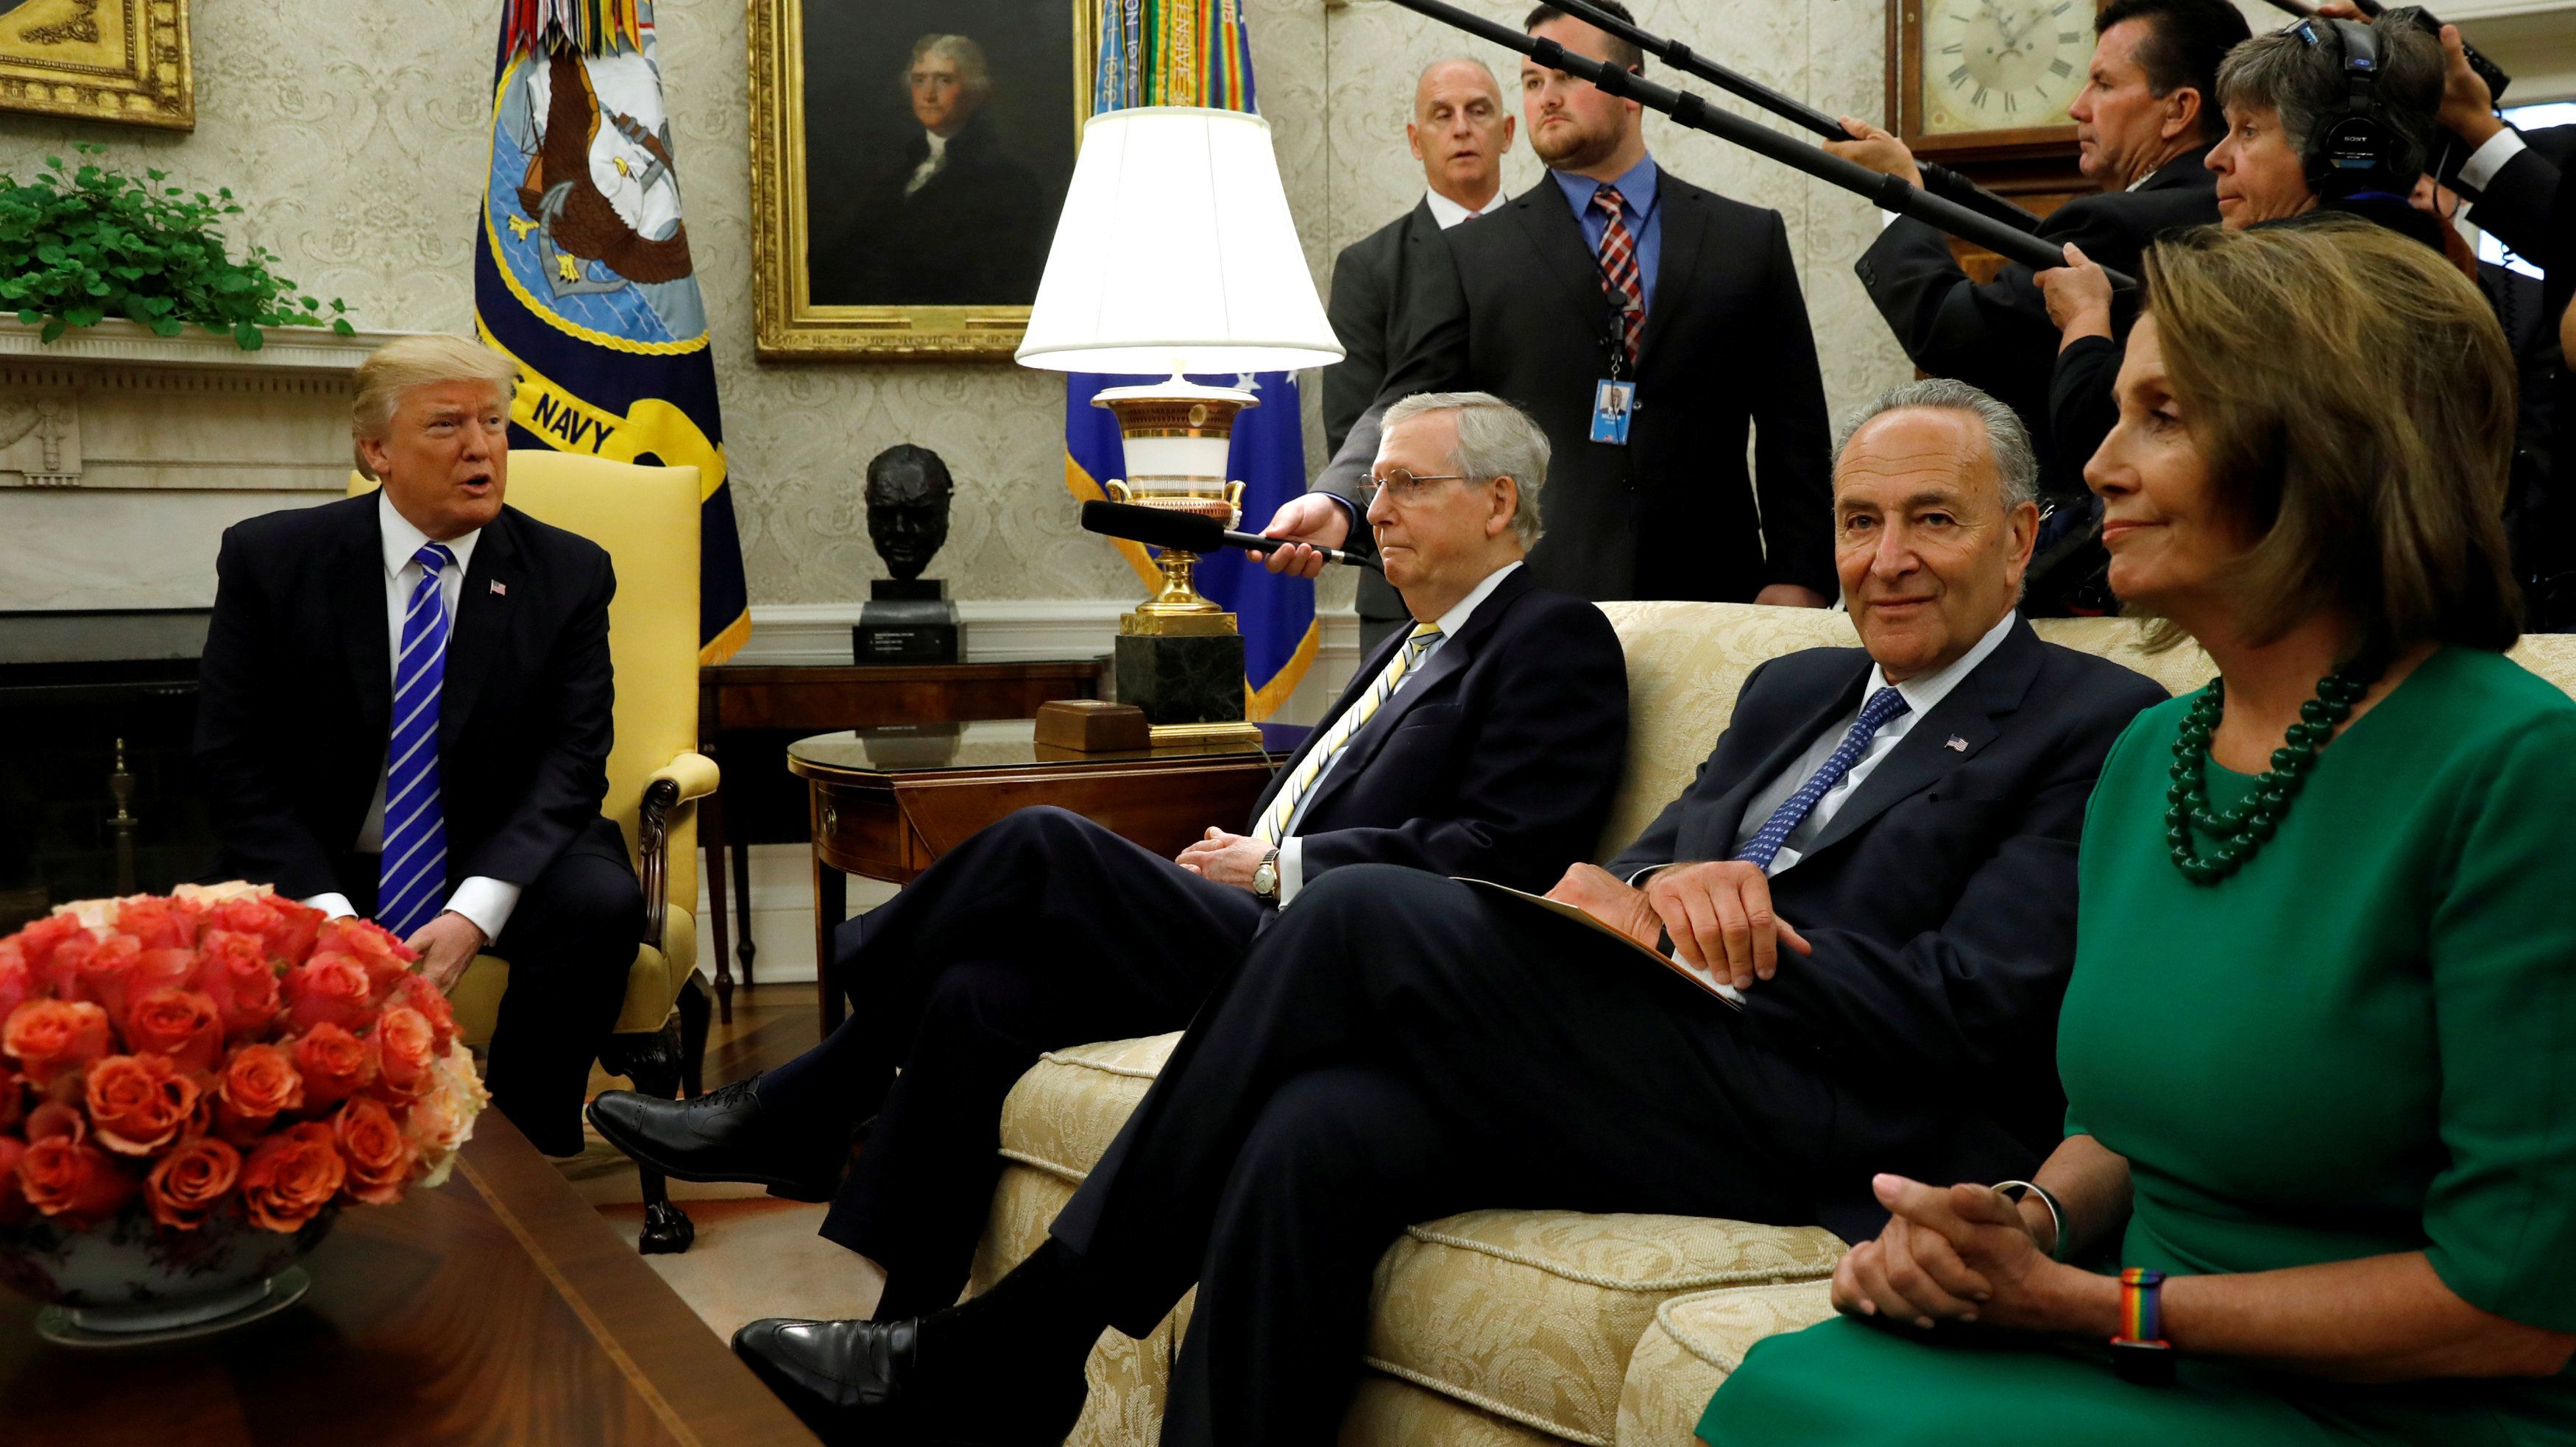 President Donald Trump meets with, from left to right, Sen. Mitch McConnell (R-Ky.), Sen. Chuck Schumer (D-N.Y.) and Rep. Nan